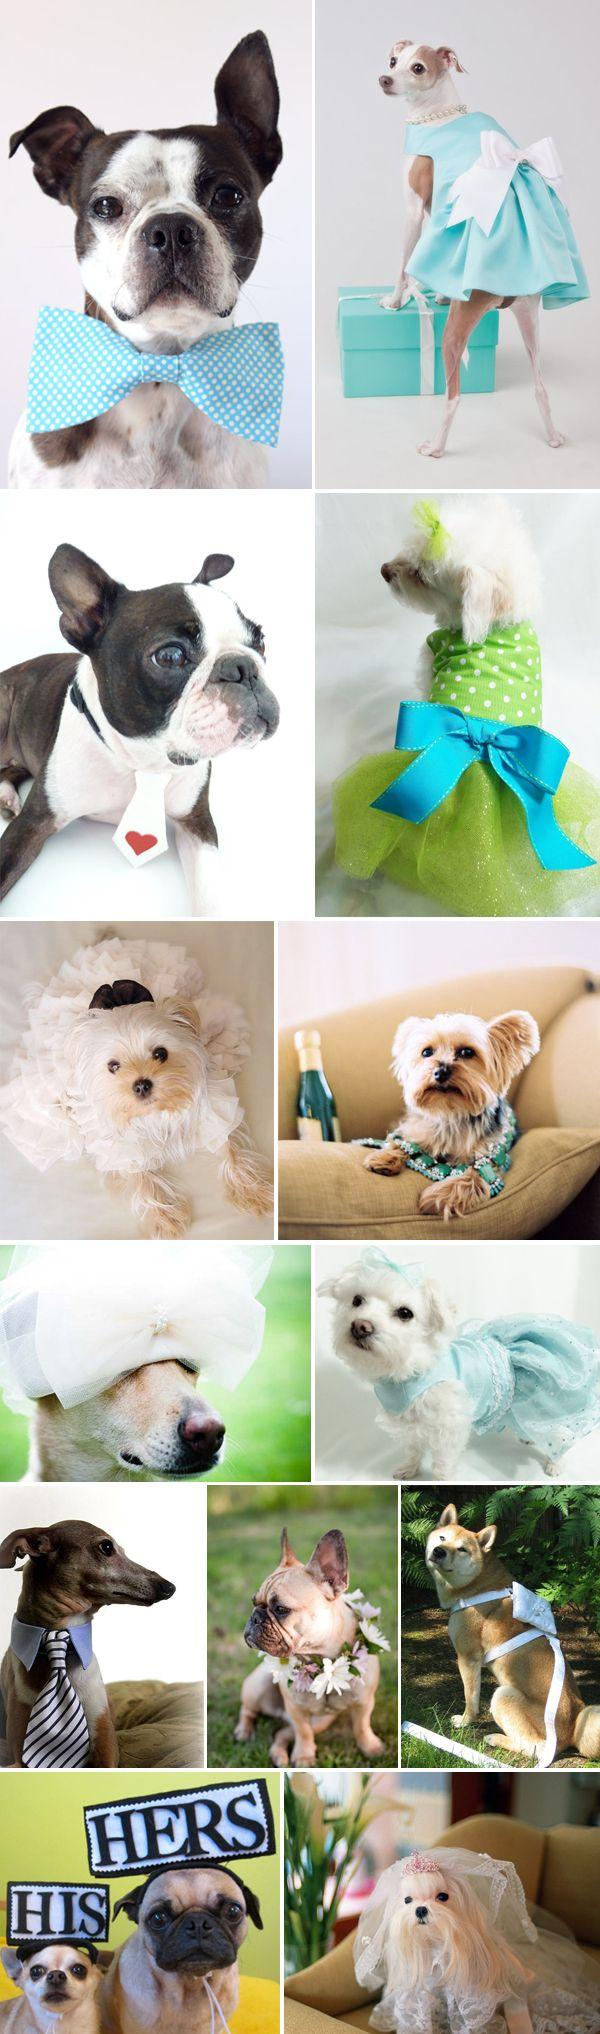 زفاف - Super Cute! Wedding Dogs